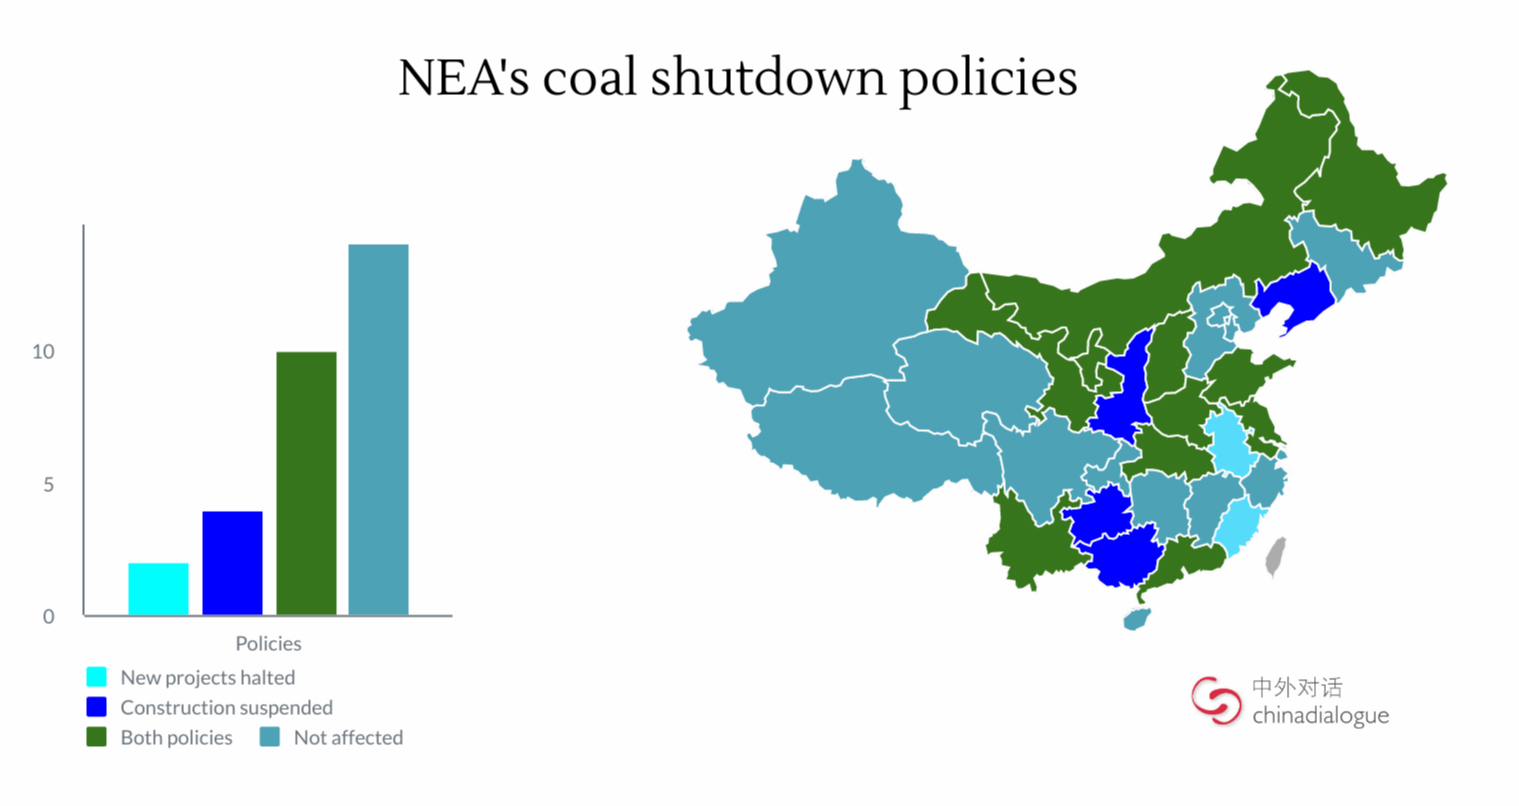 NEA's coal shutdown policies